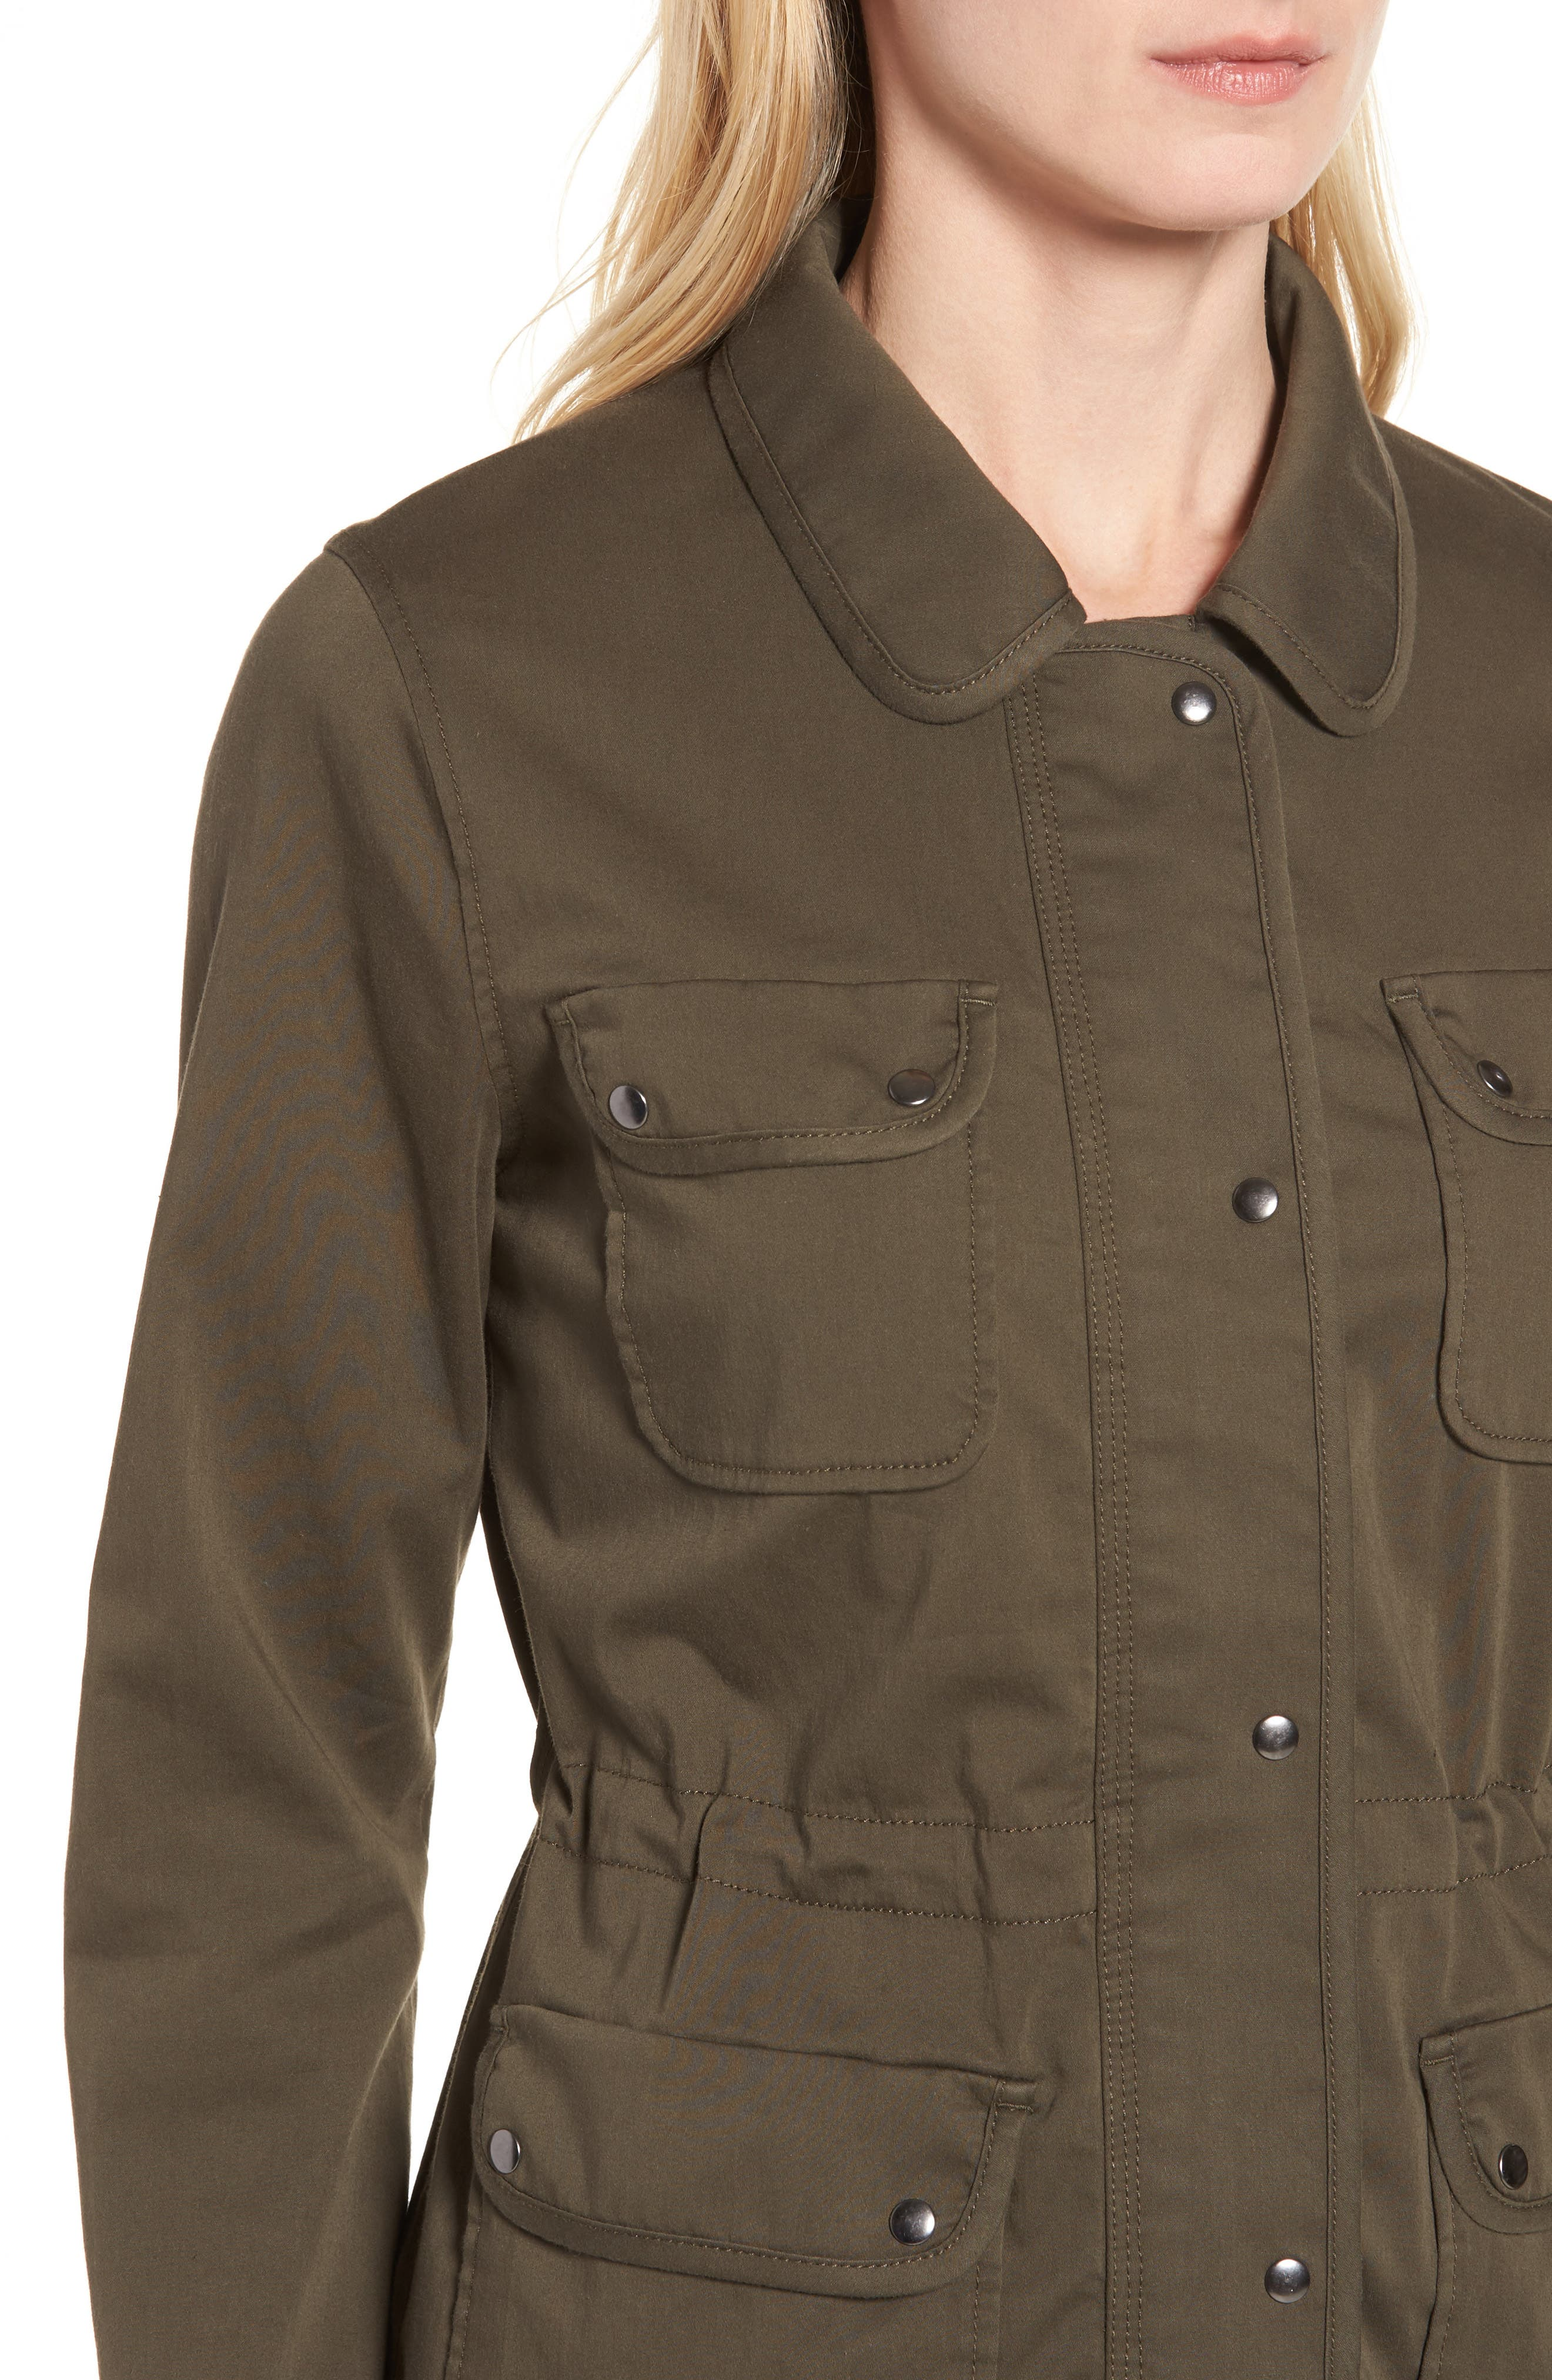 Sateen Utility Jacket,                             Alternate thumbnail 4, color,                             Olive Grove